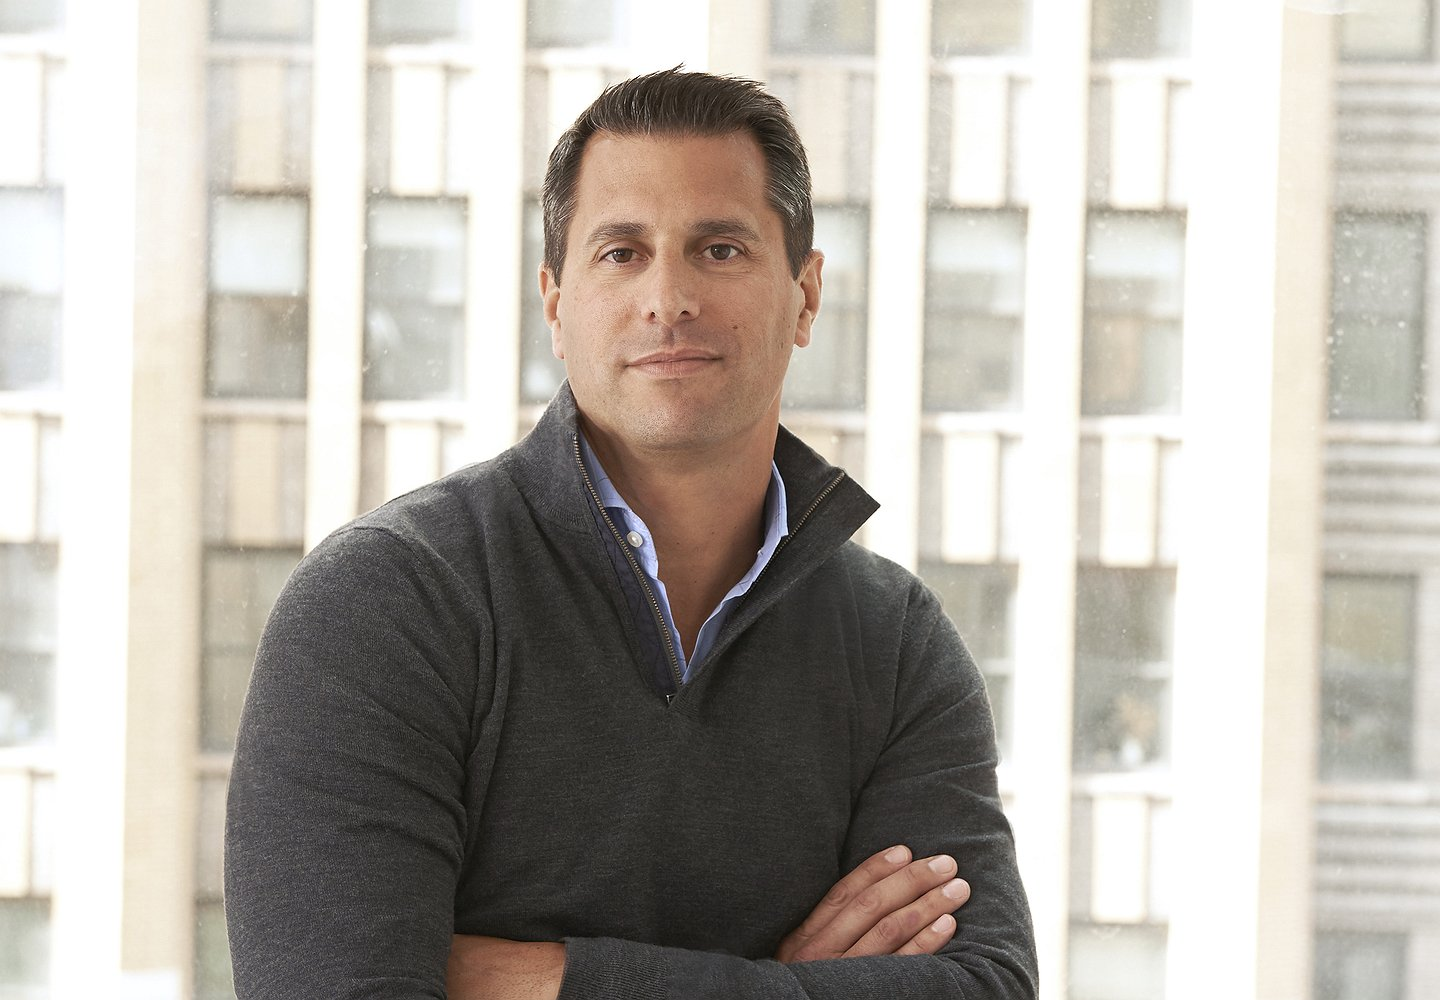 Cross MediaWorks' Nick Troiano on Creating the Next Generation of TV Advertising